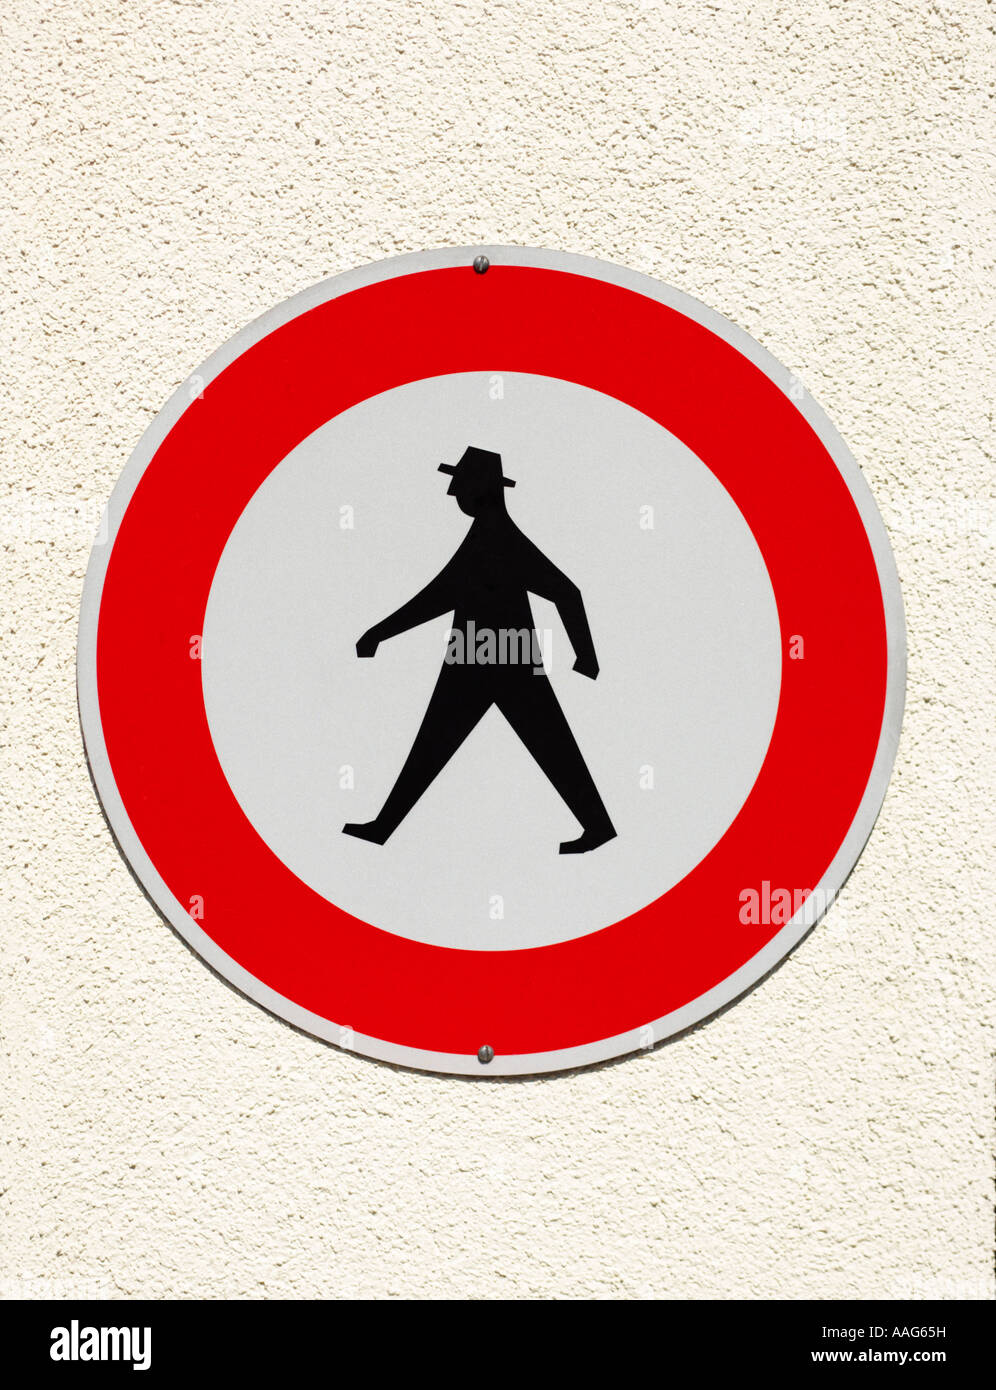 German pedestrian no walking sign, Germany, Europe - showing the iconic design - Stock Image